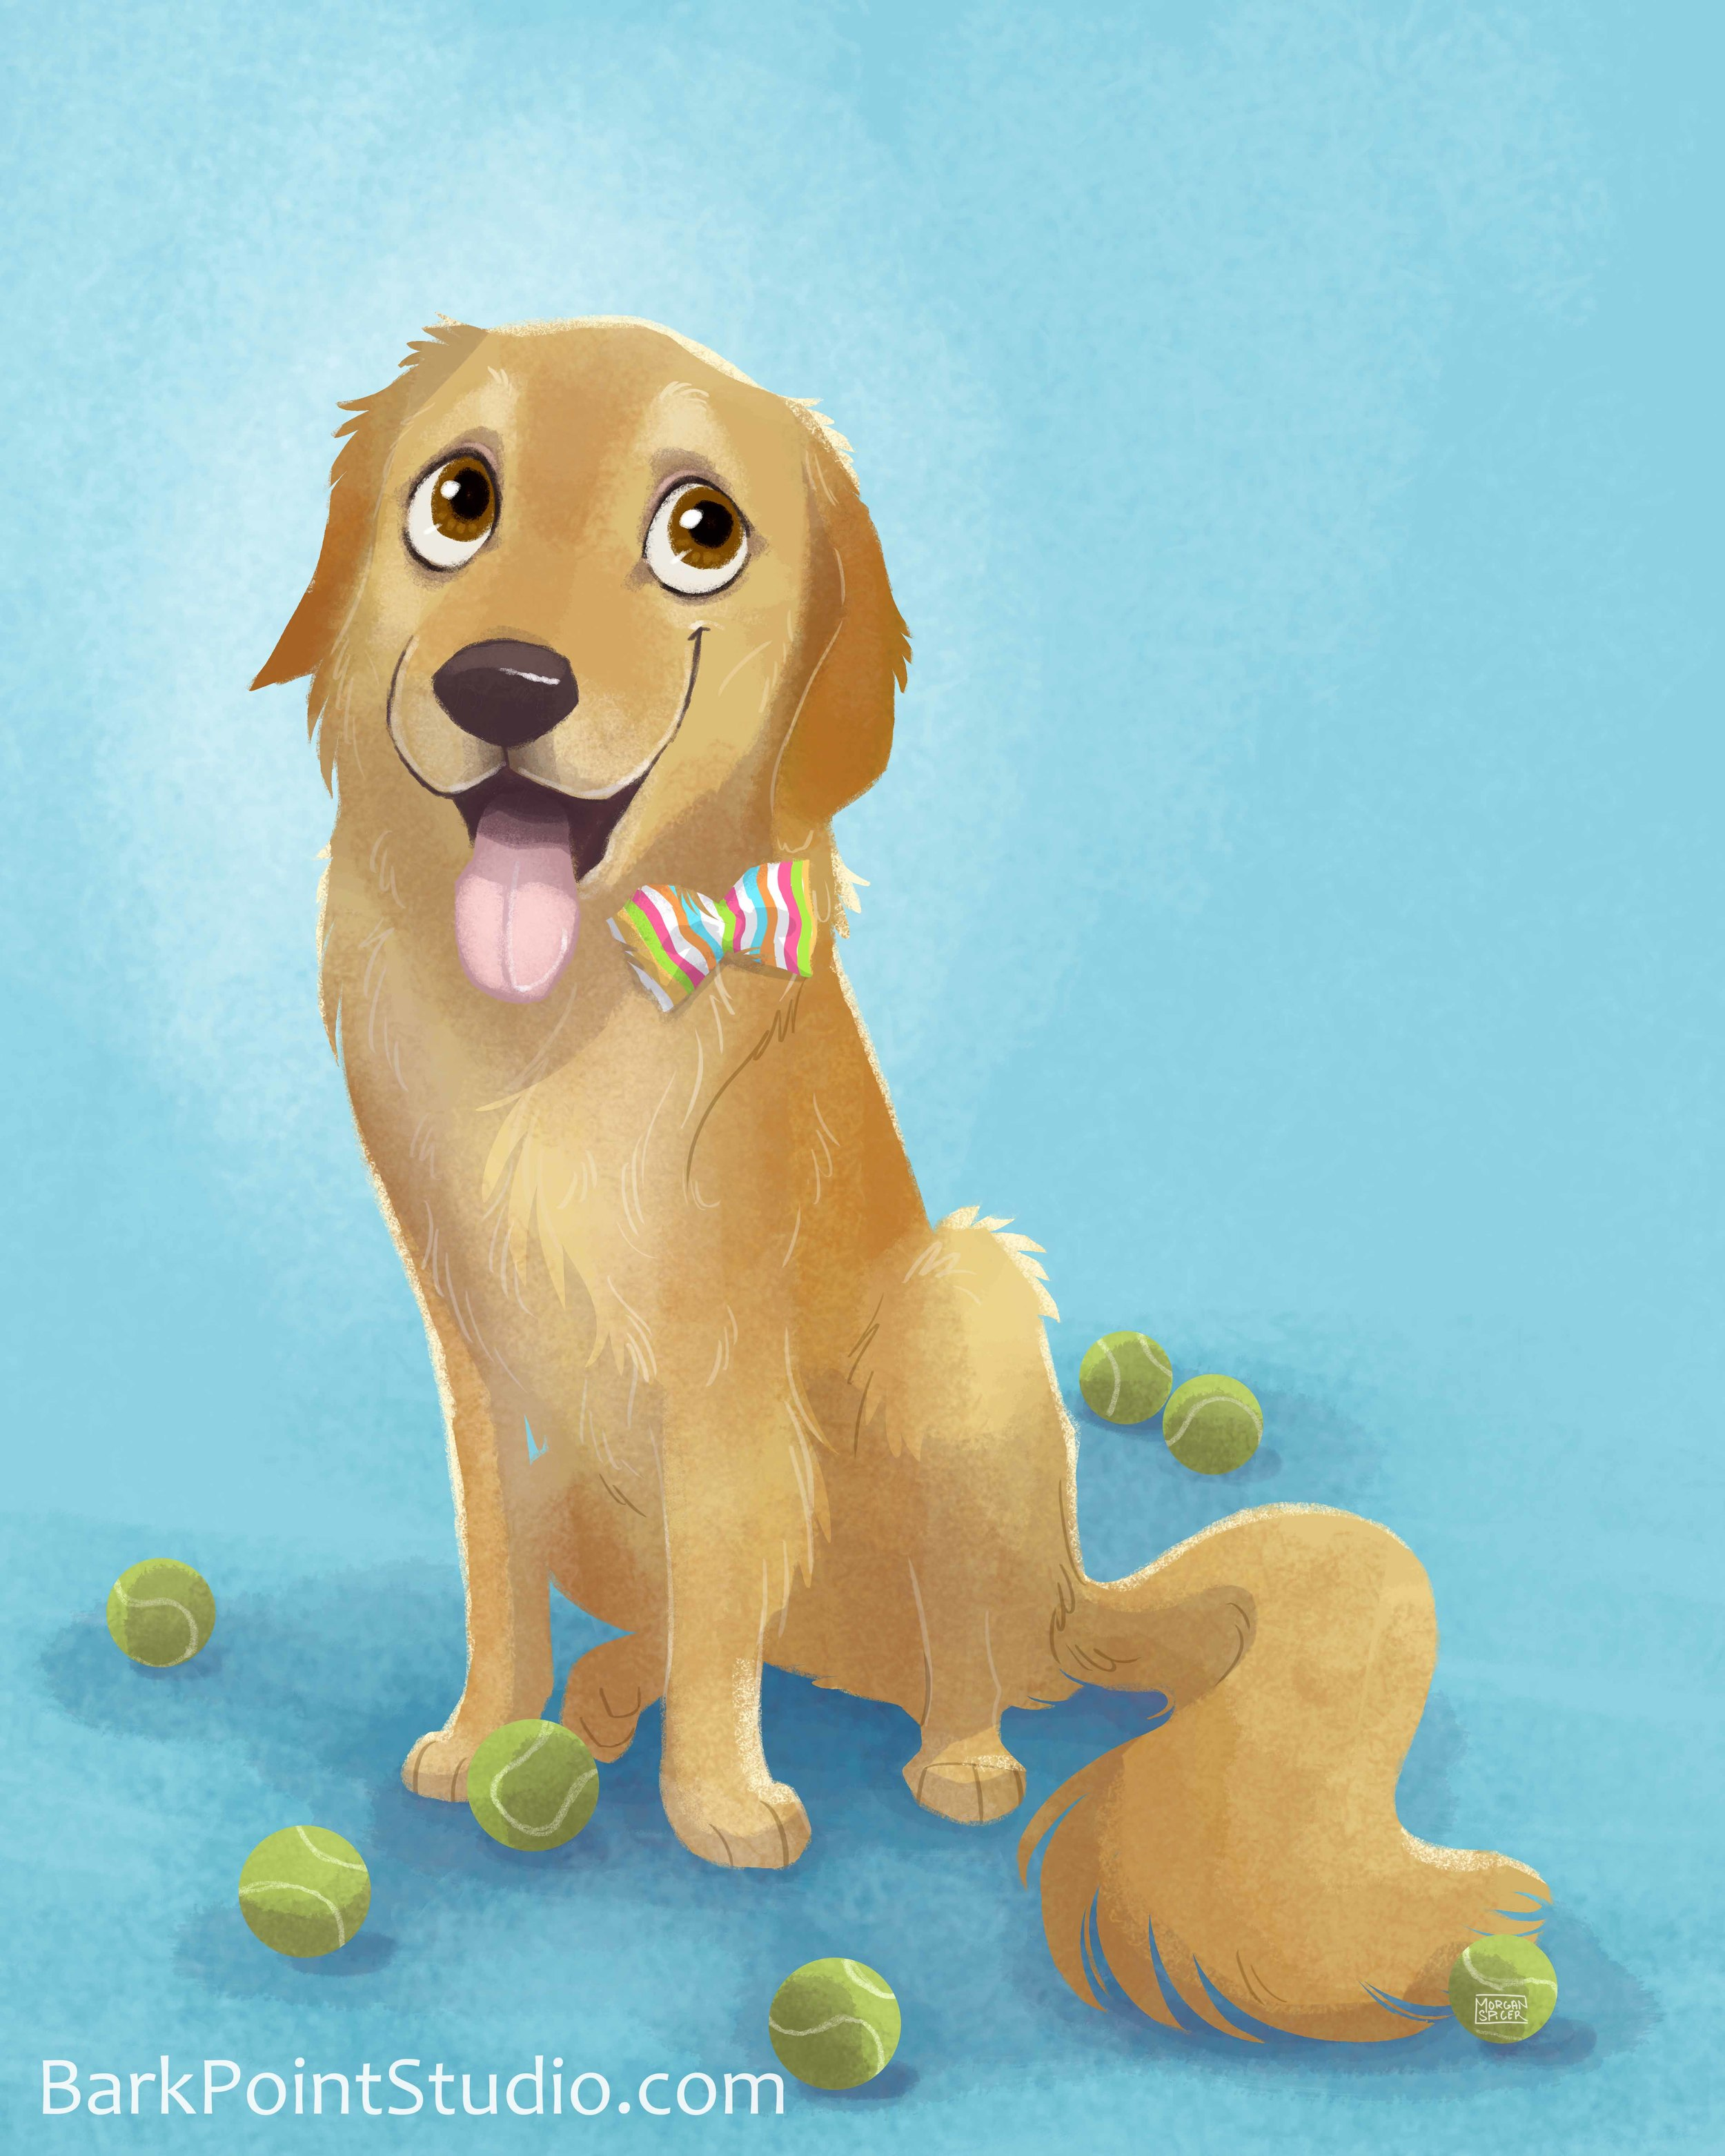 InMemoryOfBentleyTheGolden_BigFluffyDog_IllustrationKLikes1.jpg